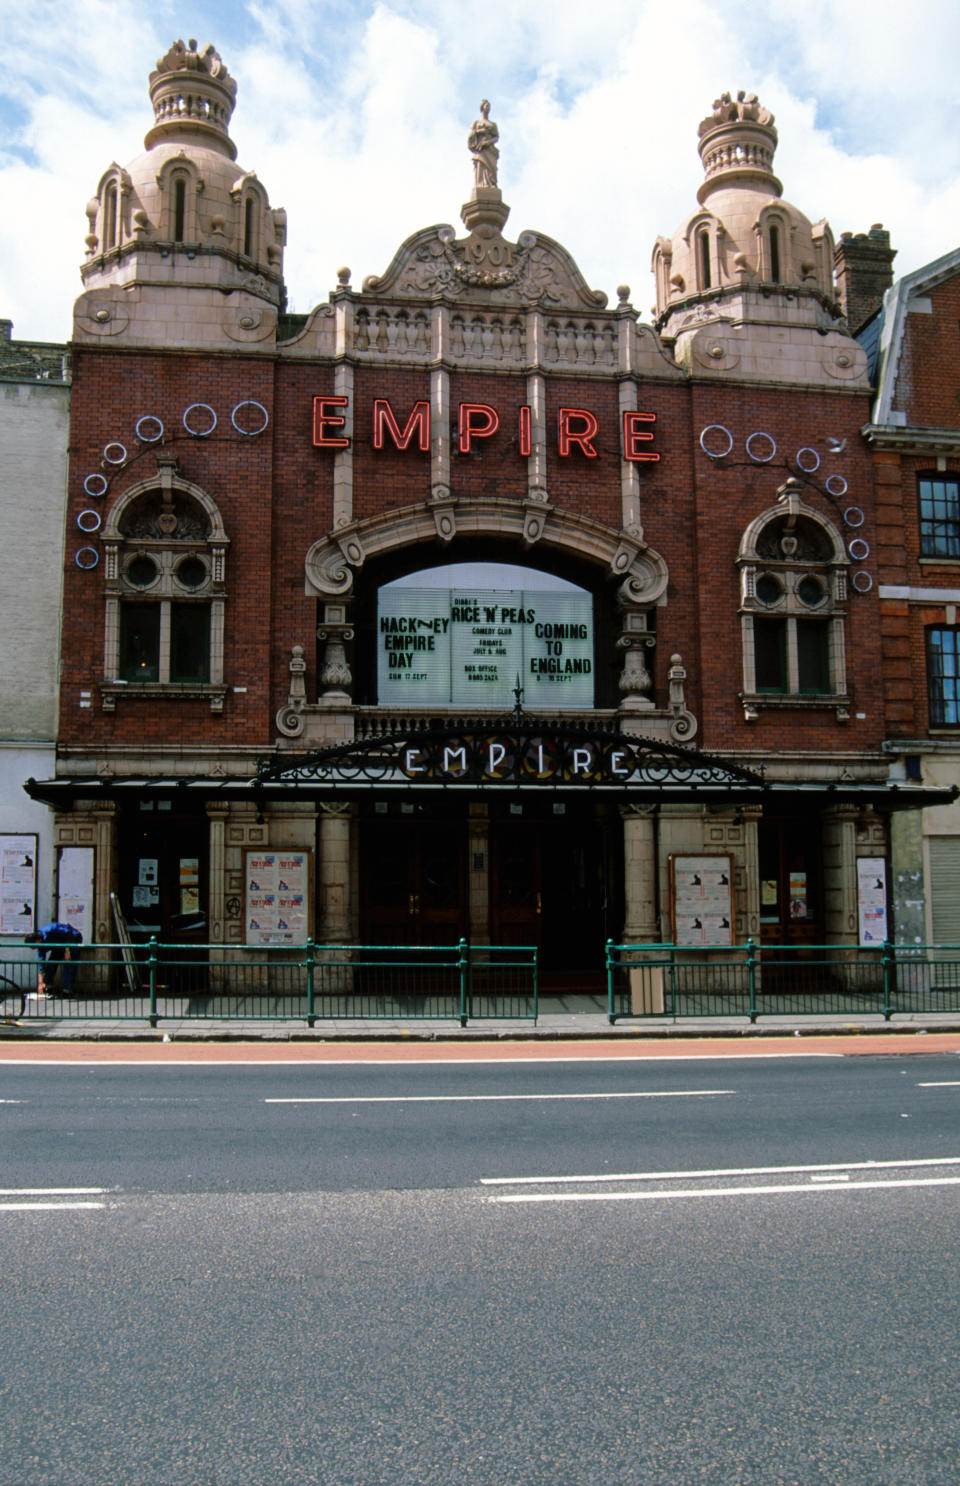 Exterior of Hackney Empire, East London UK 2000. (Photo by: Photofusion/Universal Images Group via Getty Images)